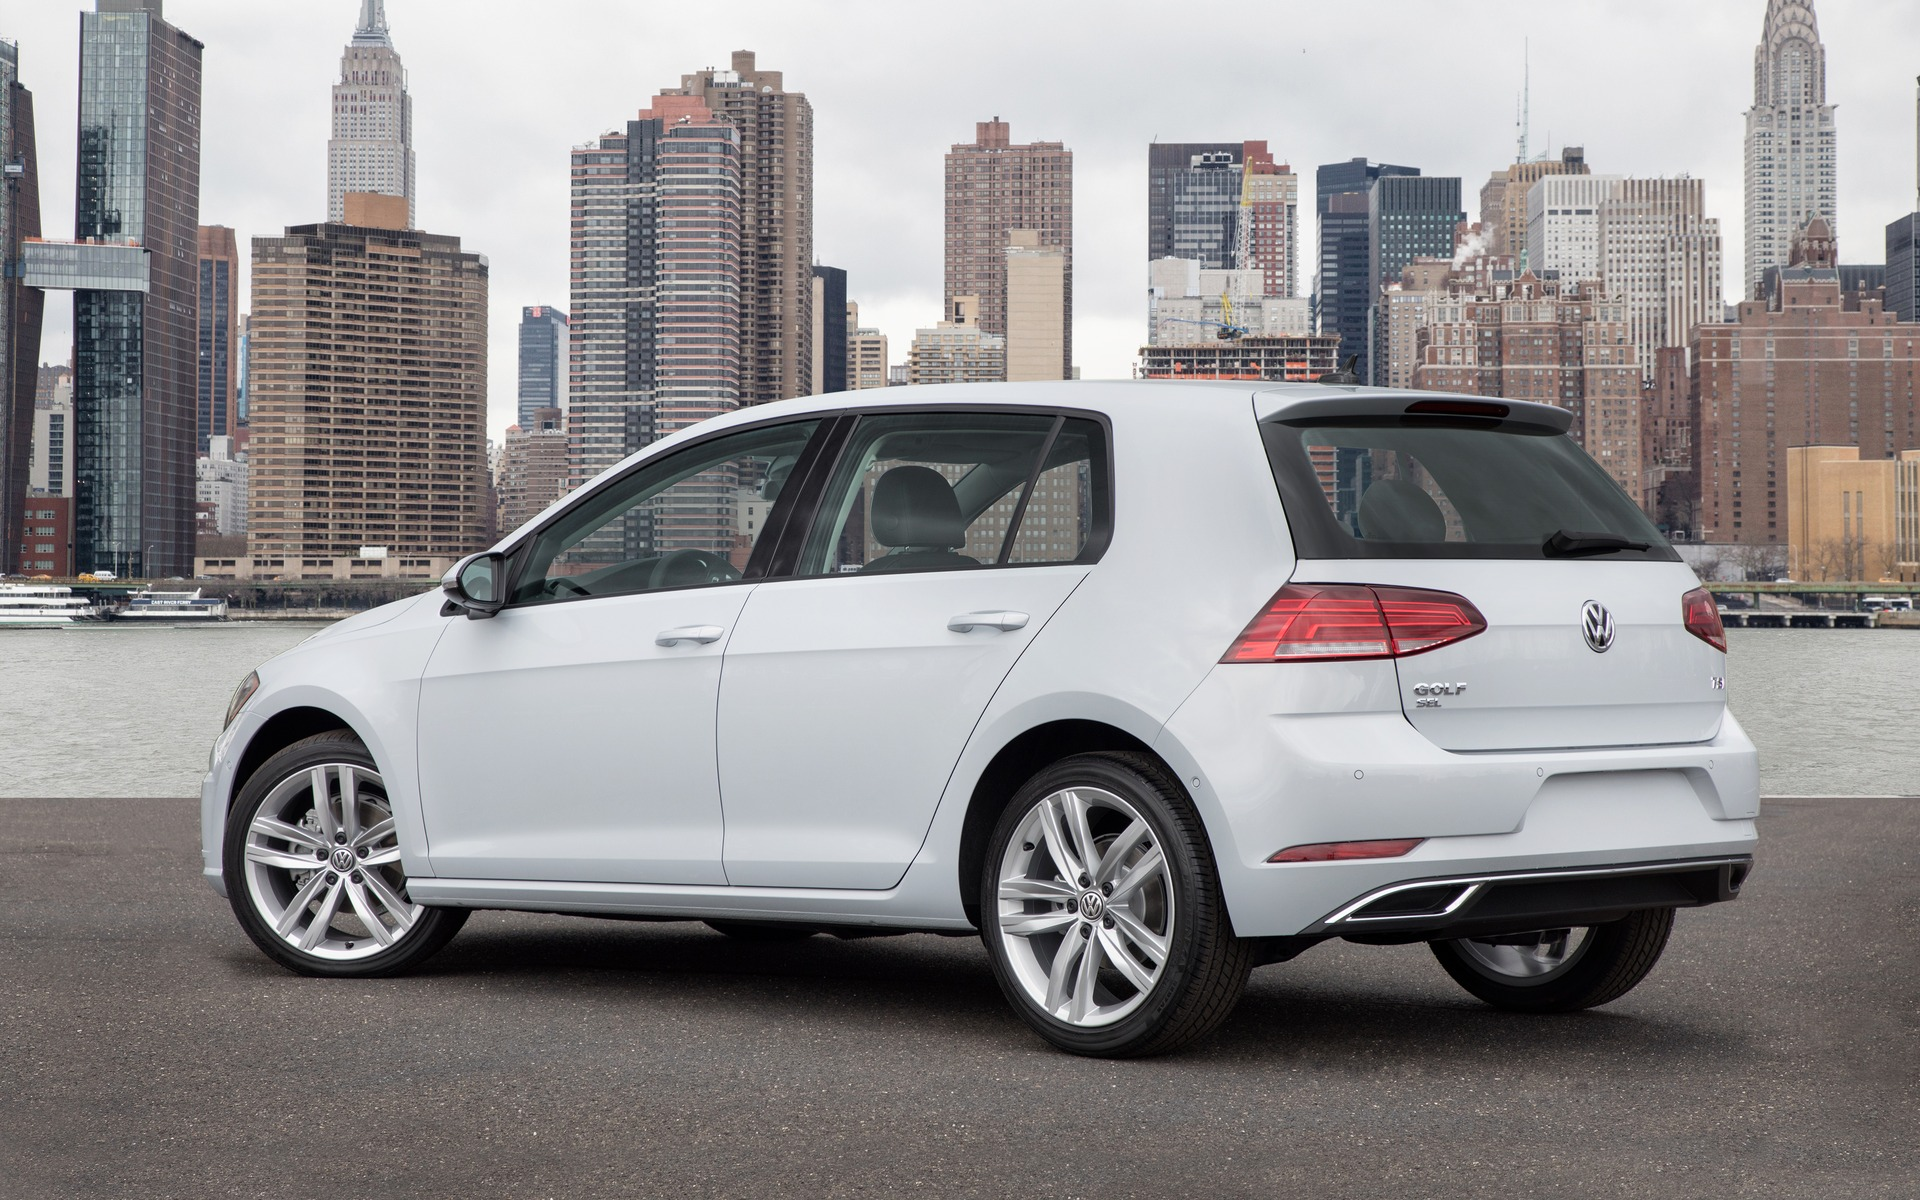 2018 volkswagen golf trendline 3 door specifications the. Black Bedroom Furniture Sets. Home Design Ideas